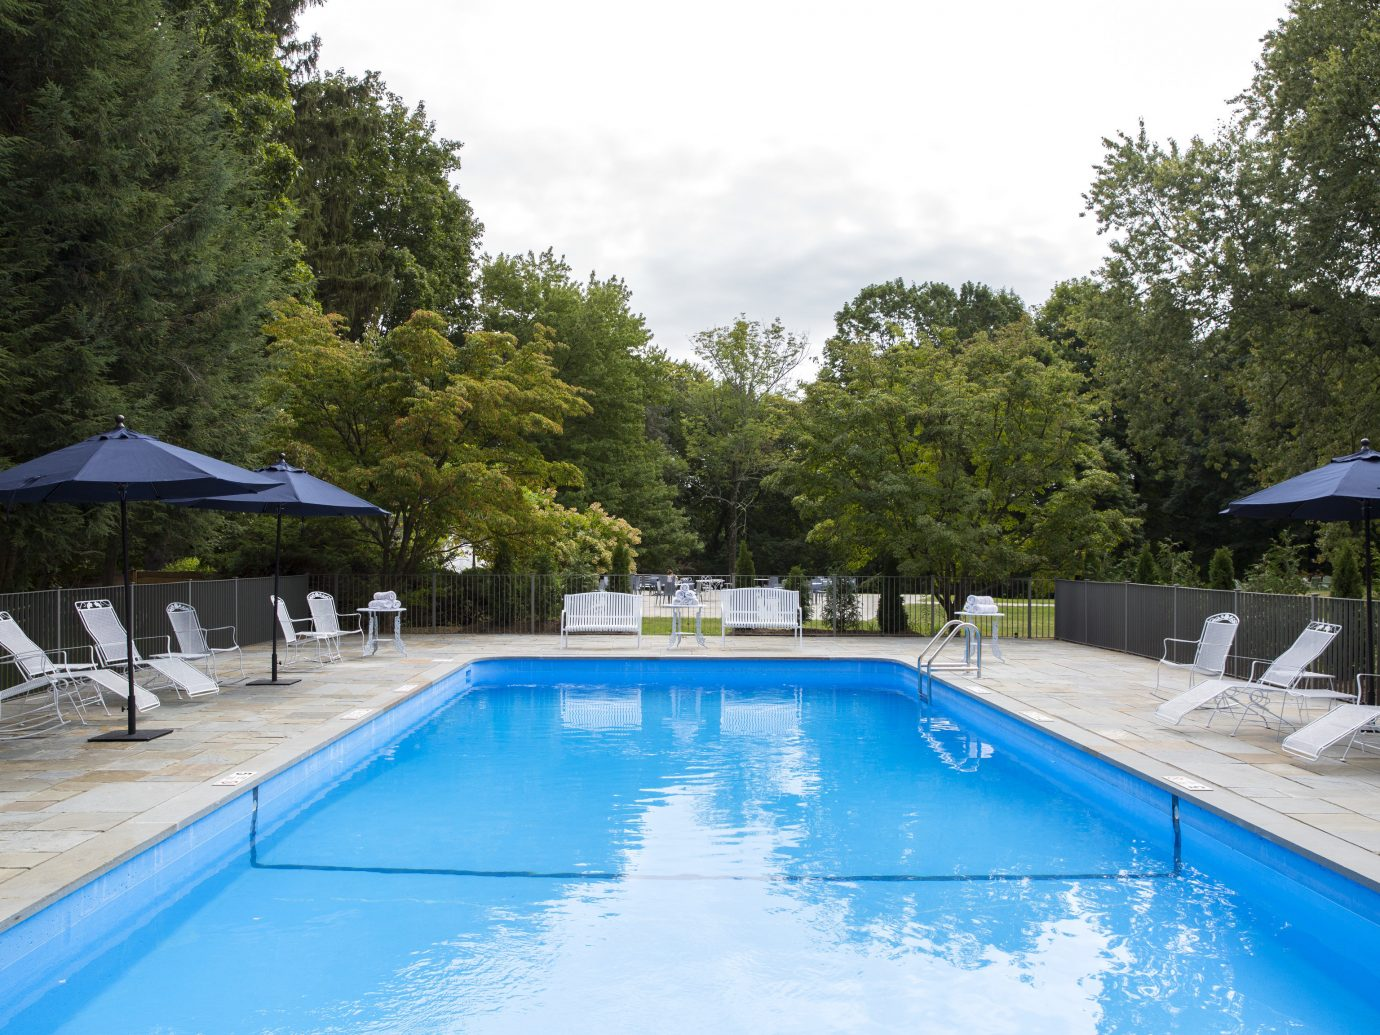 Hotels New York Romantic Hotels tree outdoor swimming pool Pool leisure property estate backyard Resort Villa blue swimming